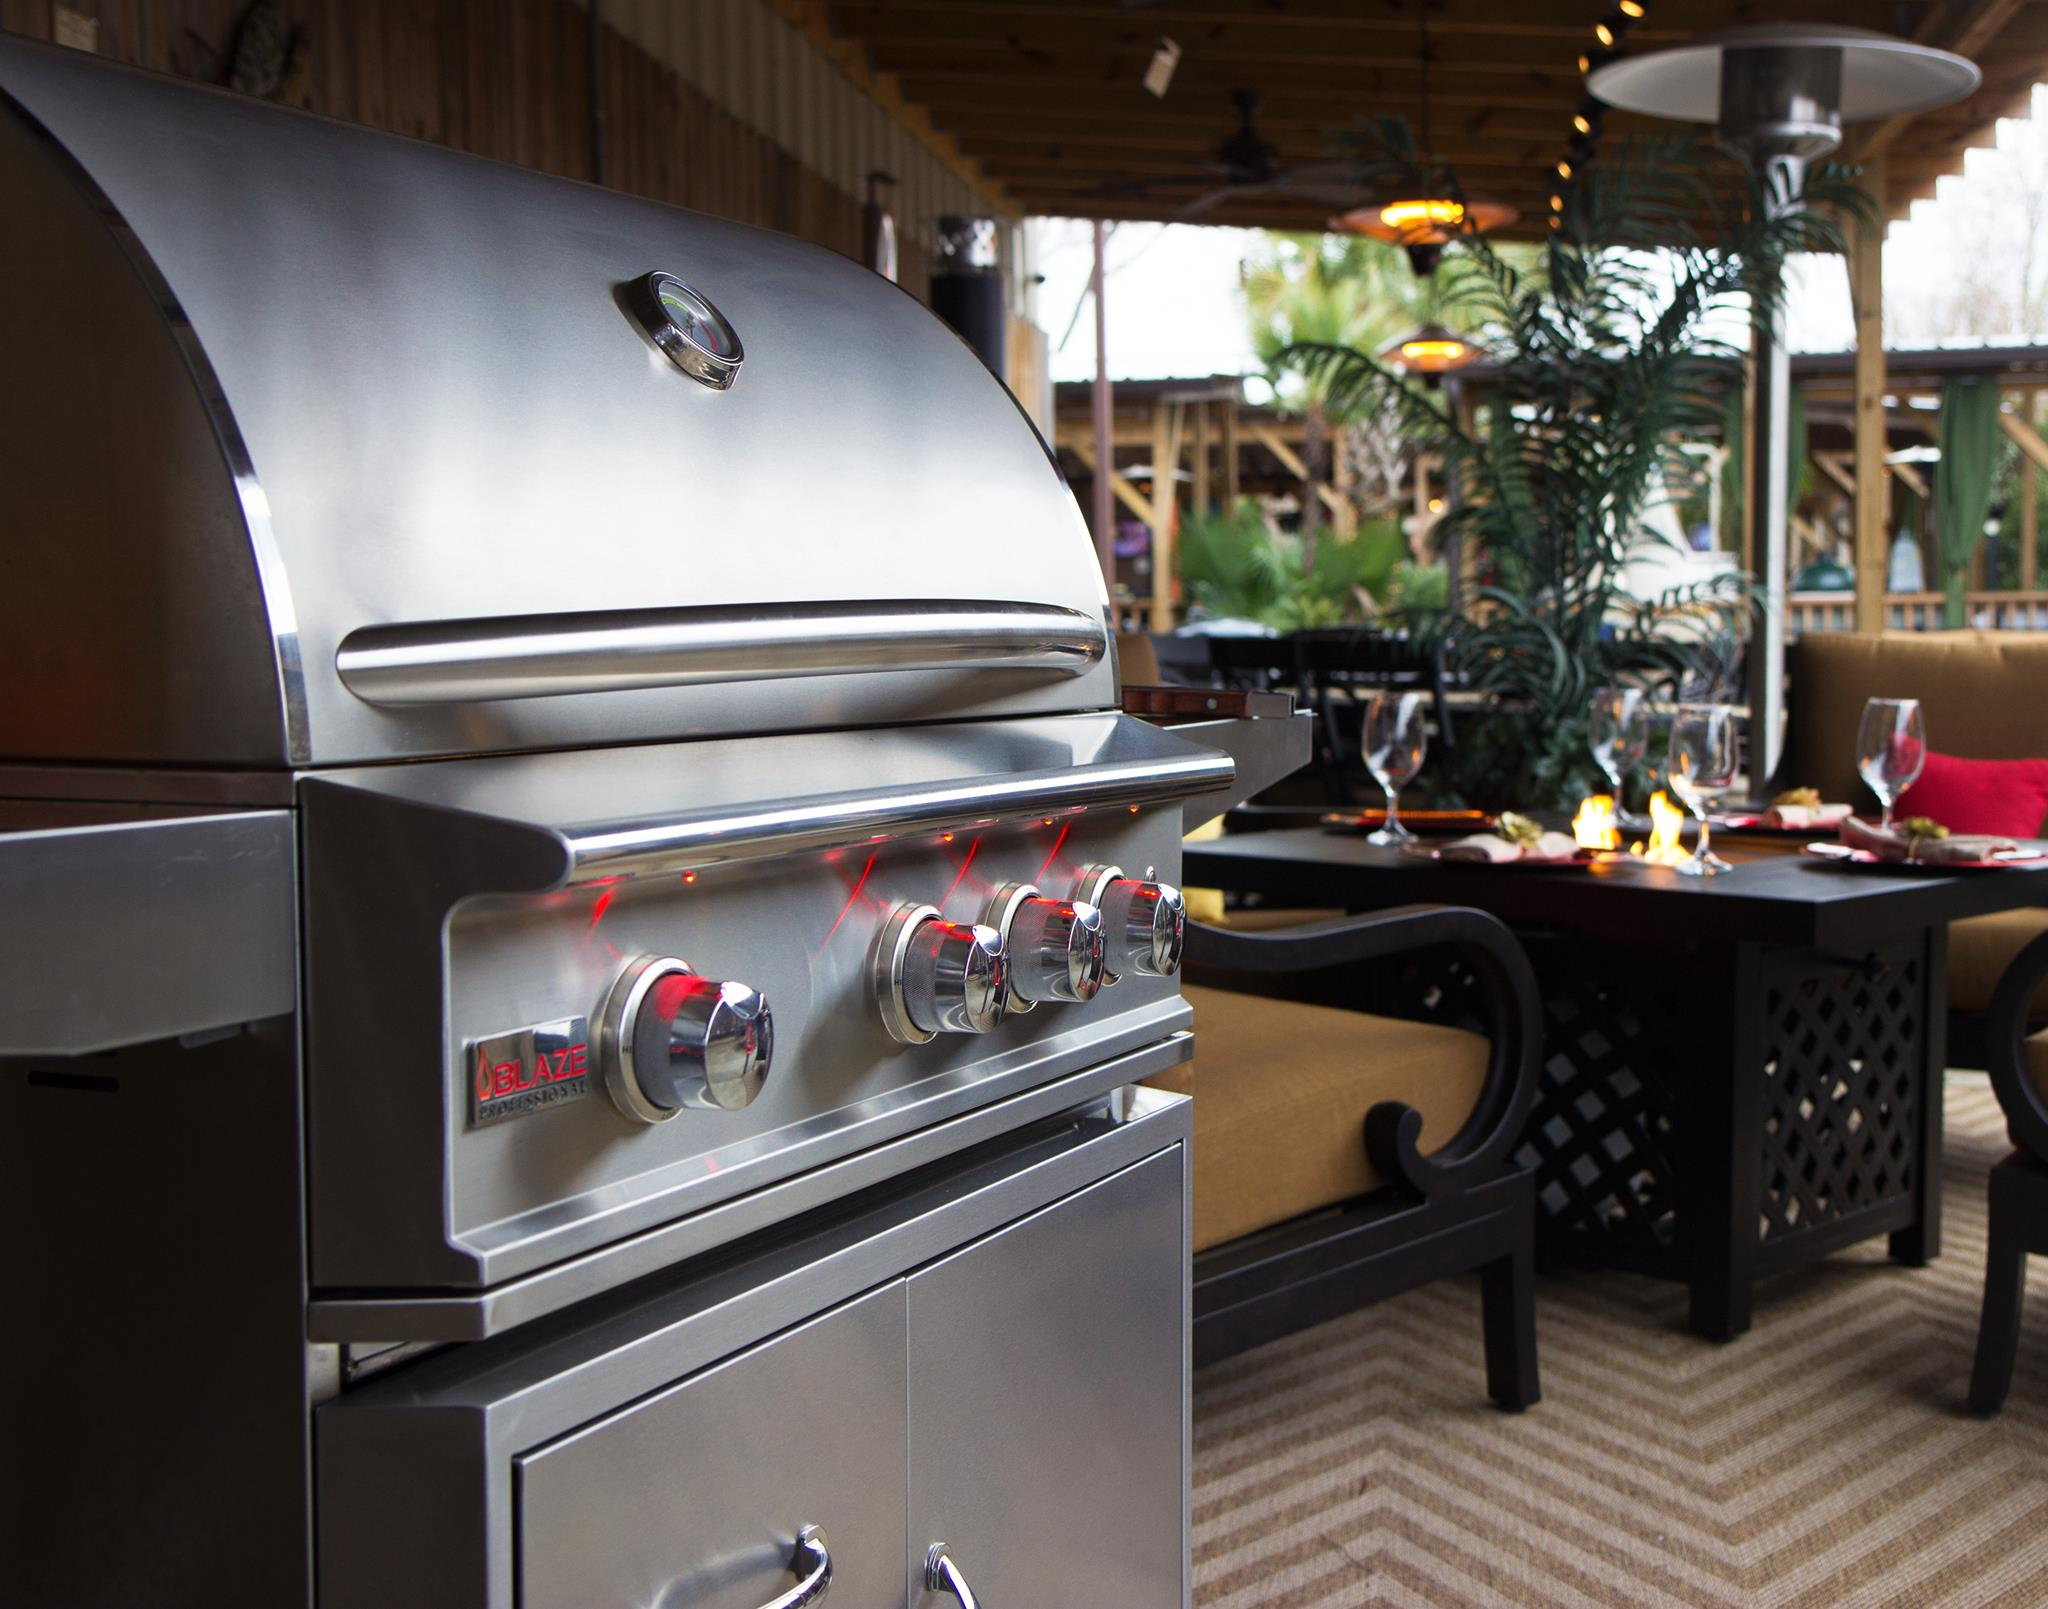 Blaze Grills - Gas Grills at ABSCO - Pelham & Birmingham Alabama